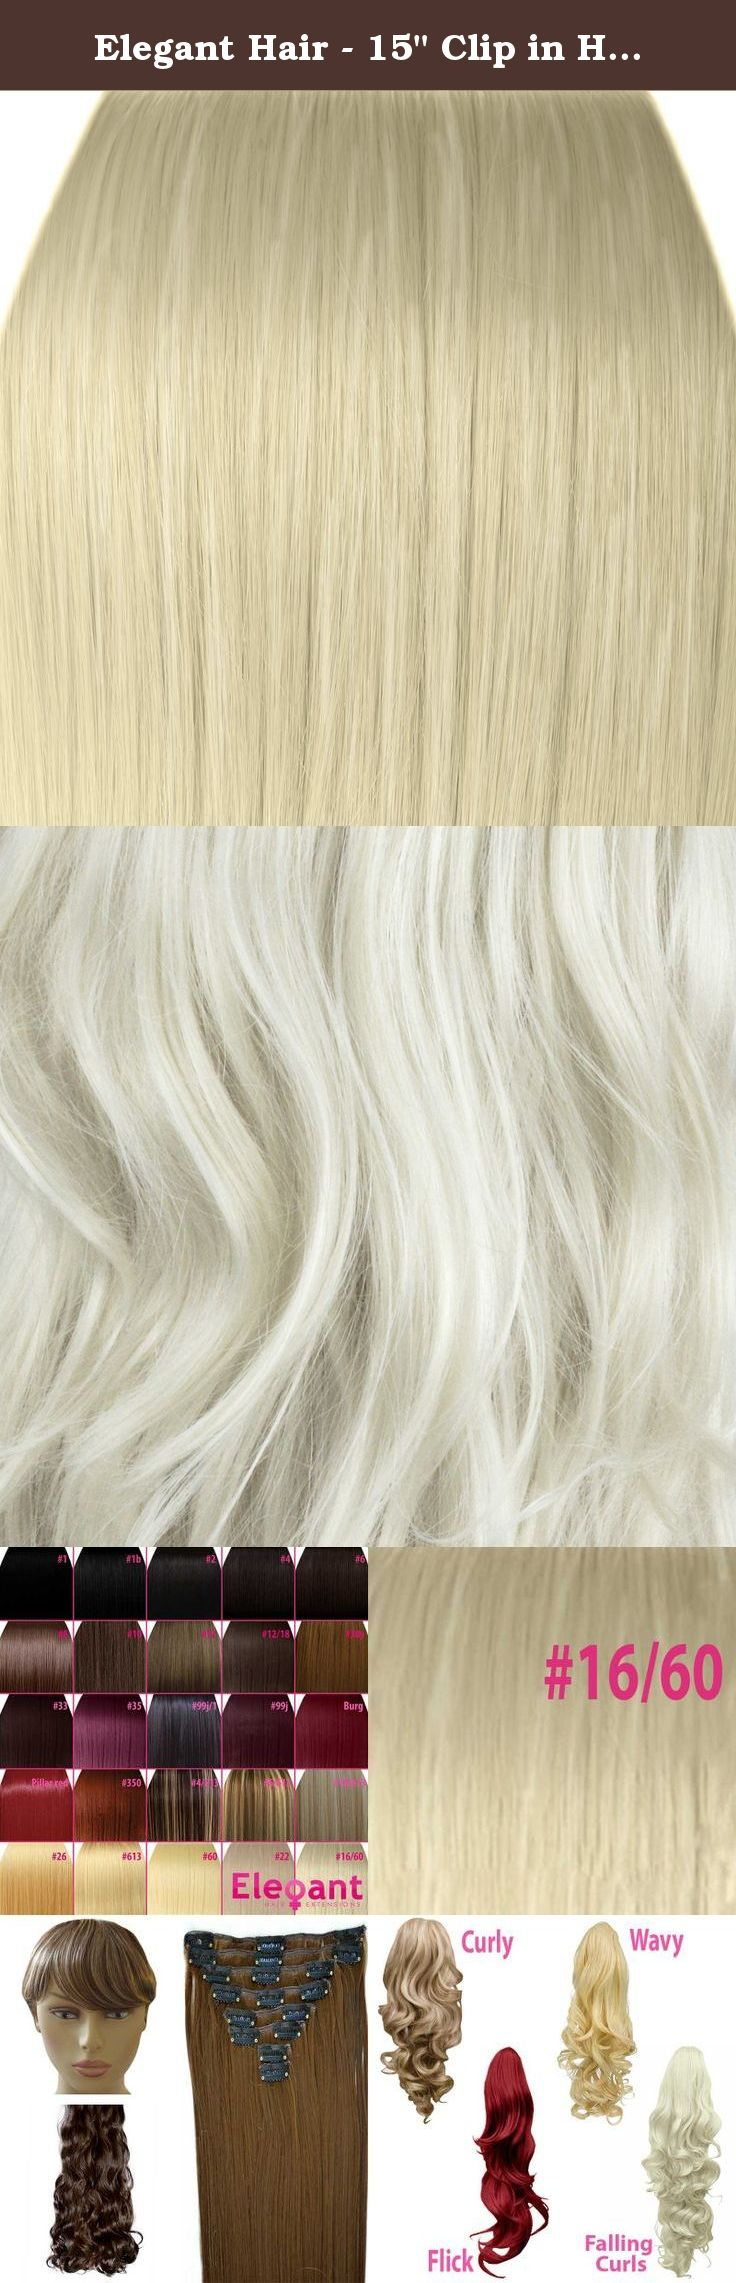 "Elegant Hair - 15"" Clip in Hair Extensions STRAIGHT Platinum Blonde #16/60 FULL HEAD 8pcs. Product Information: Our New Full Head Sets will make thin hair thicker and short hair longer. No professional help is required, all with no damage to your own hair. Made from Japanese Futura Kanekalon Thermofibre looks and feels like human hair, silky and soft. Will remain poker straight even if you get caught in the rain. Will also remain curled until straightened again. Non slip secure clips…"